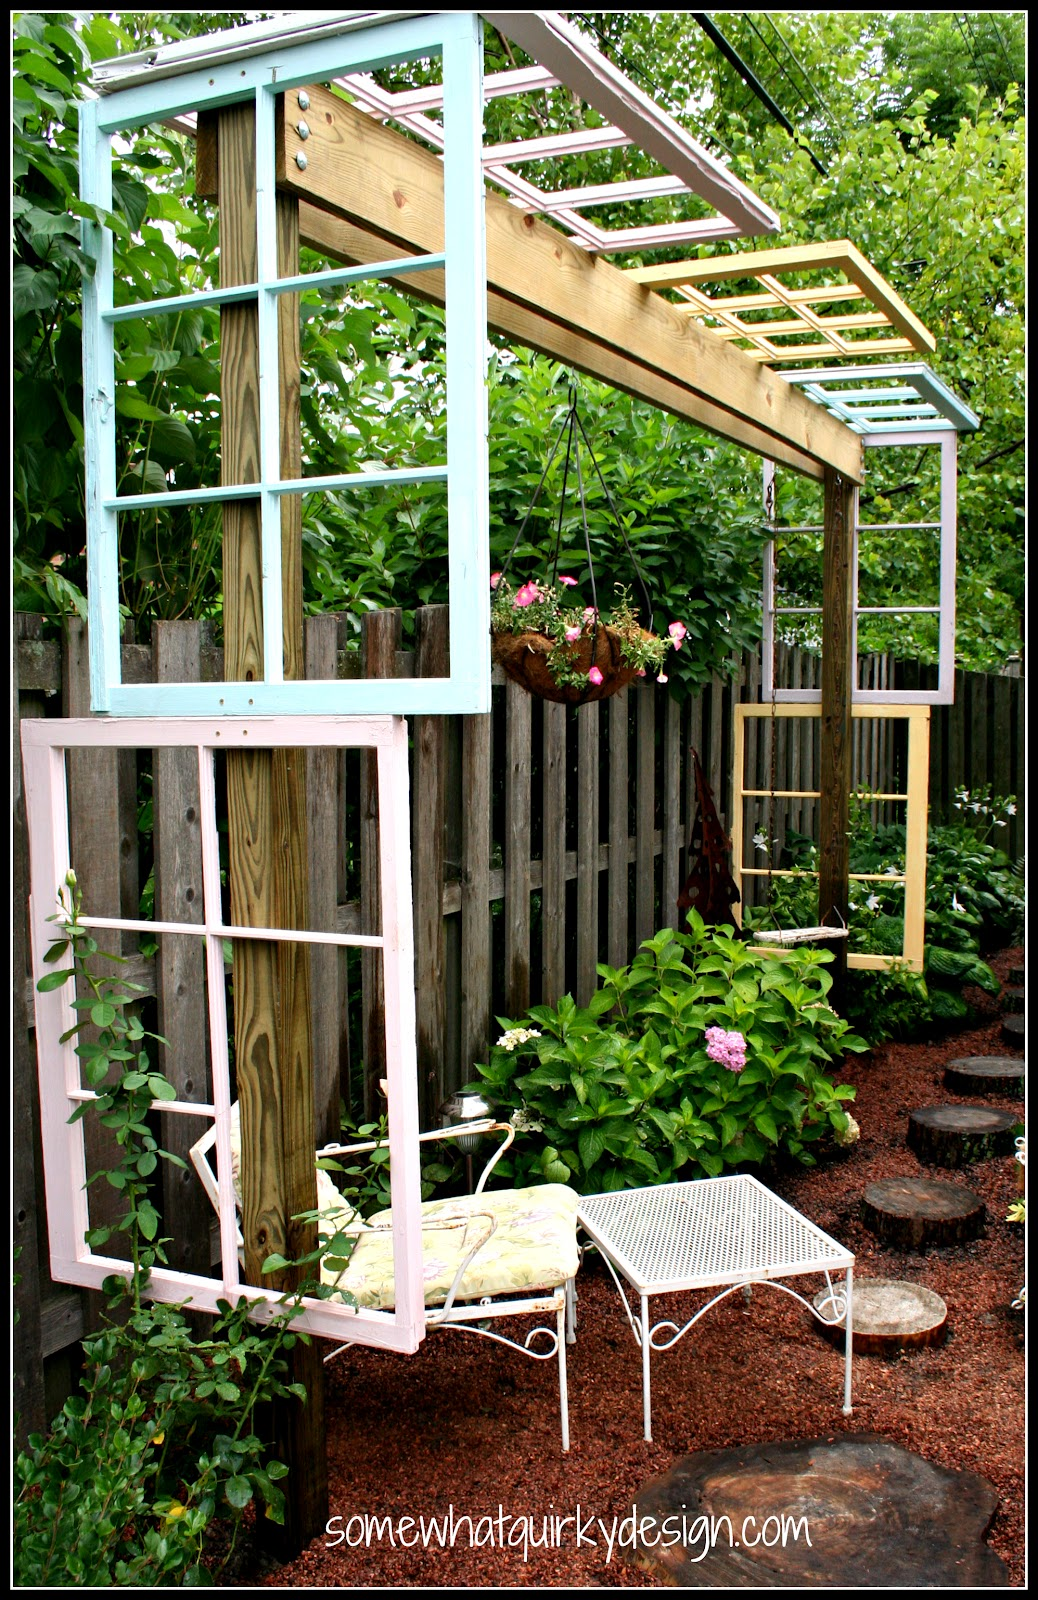 Somewhat Quirky: Building A Modified Pergola With Recycled ...